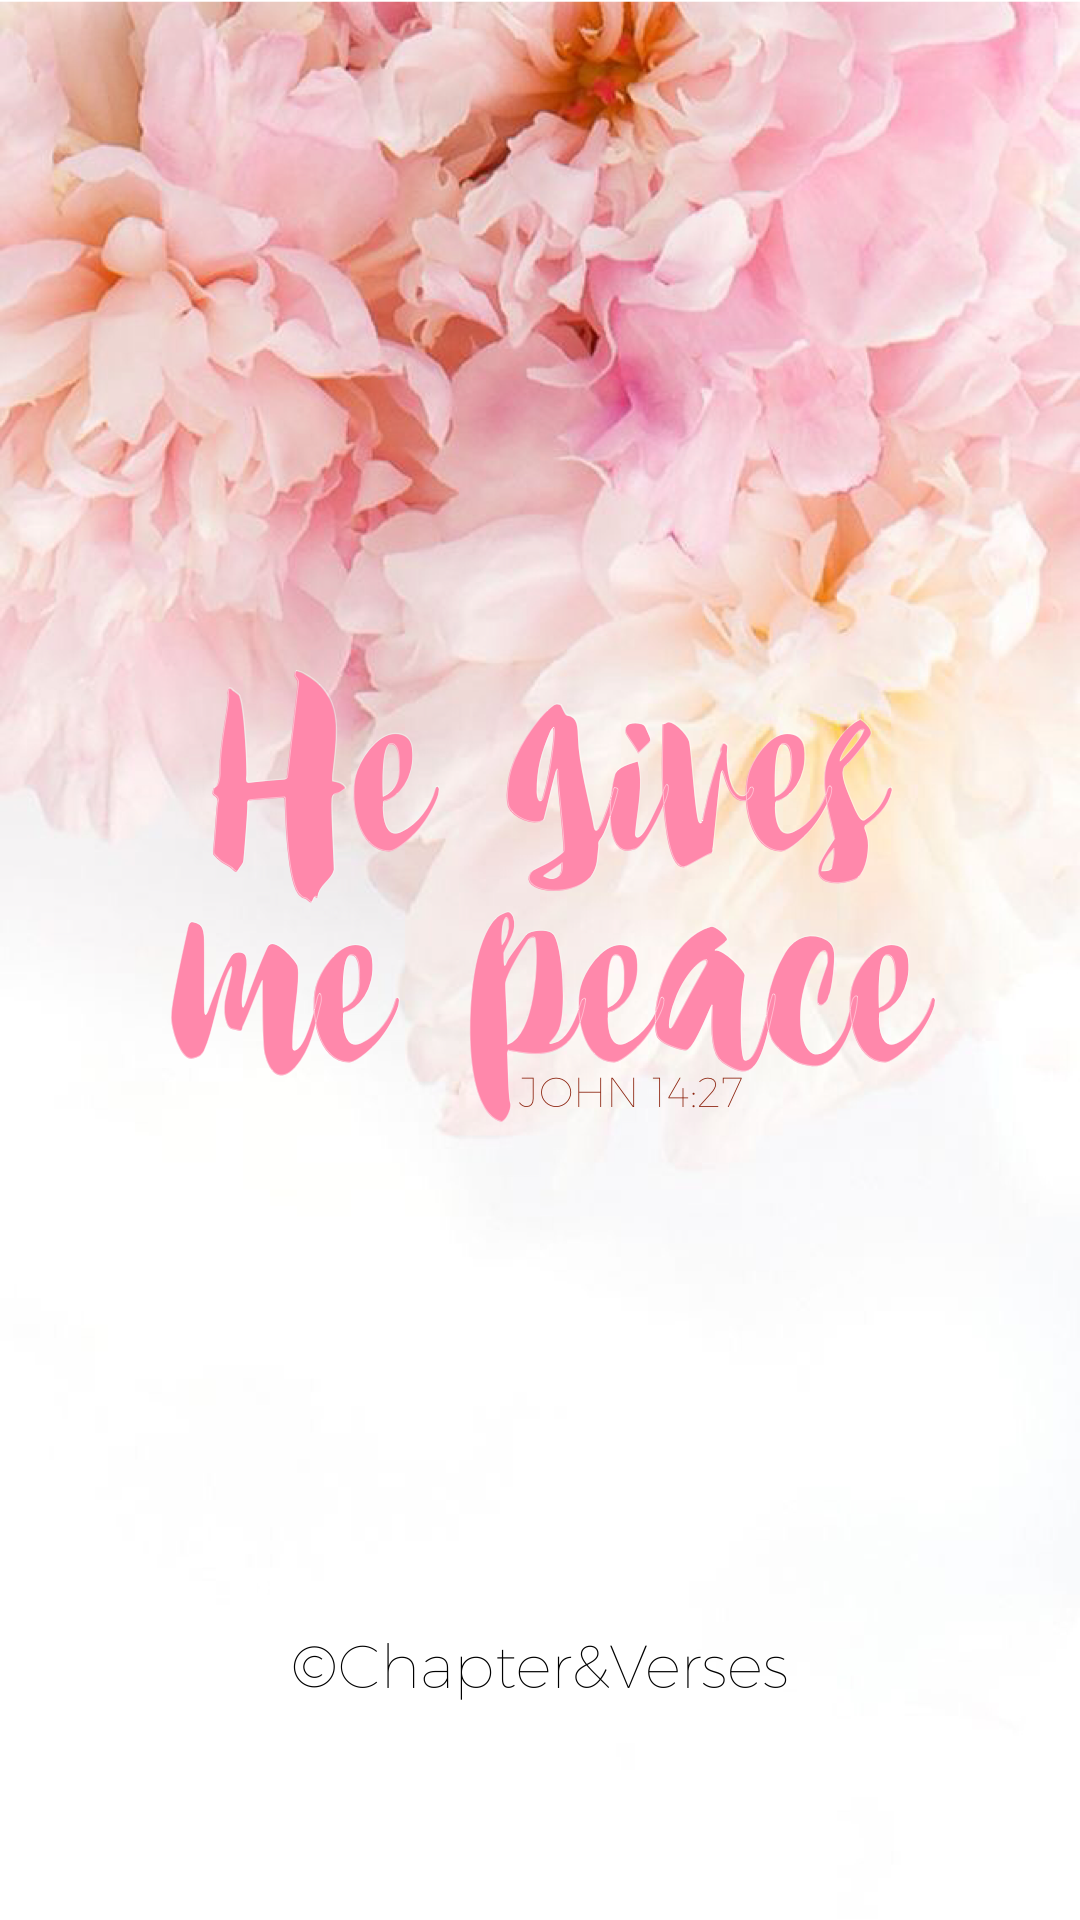 Free Christian Wallpapers Download Free Christian Wallpaper Christian Wallpaper Free Christian